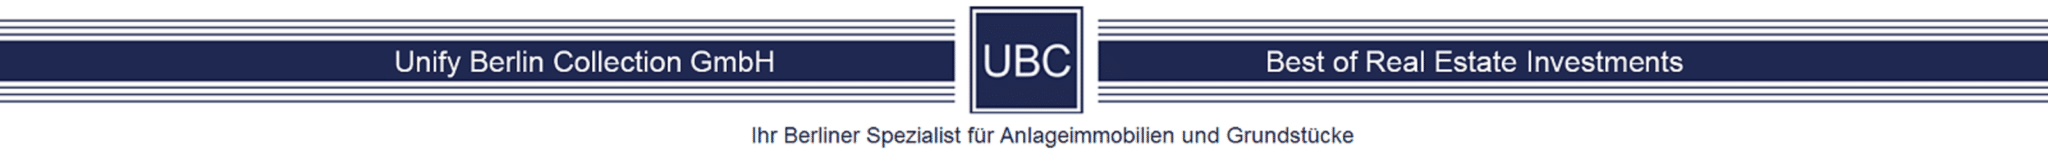 UBC – Unify Berlin Collection GmbH – Best of Real Estate Investments